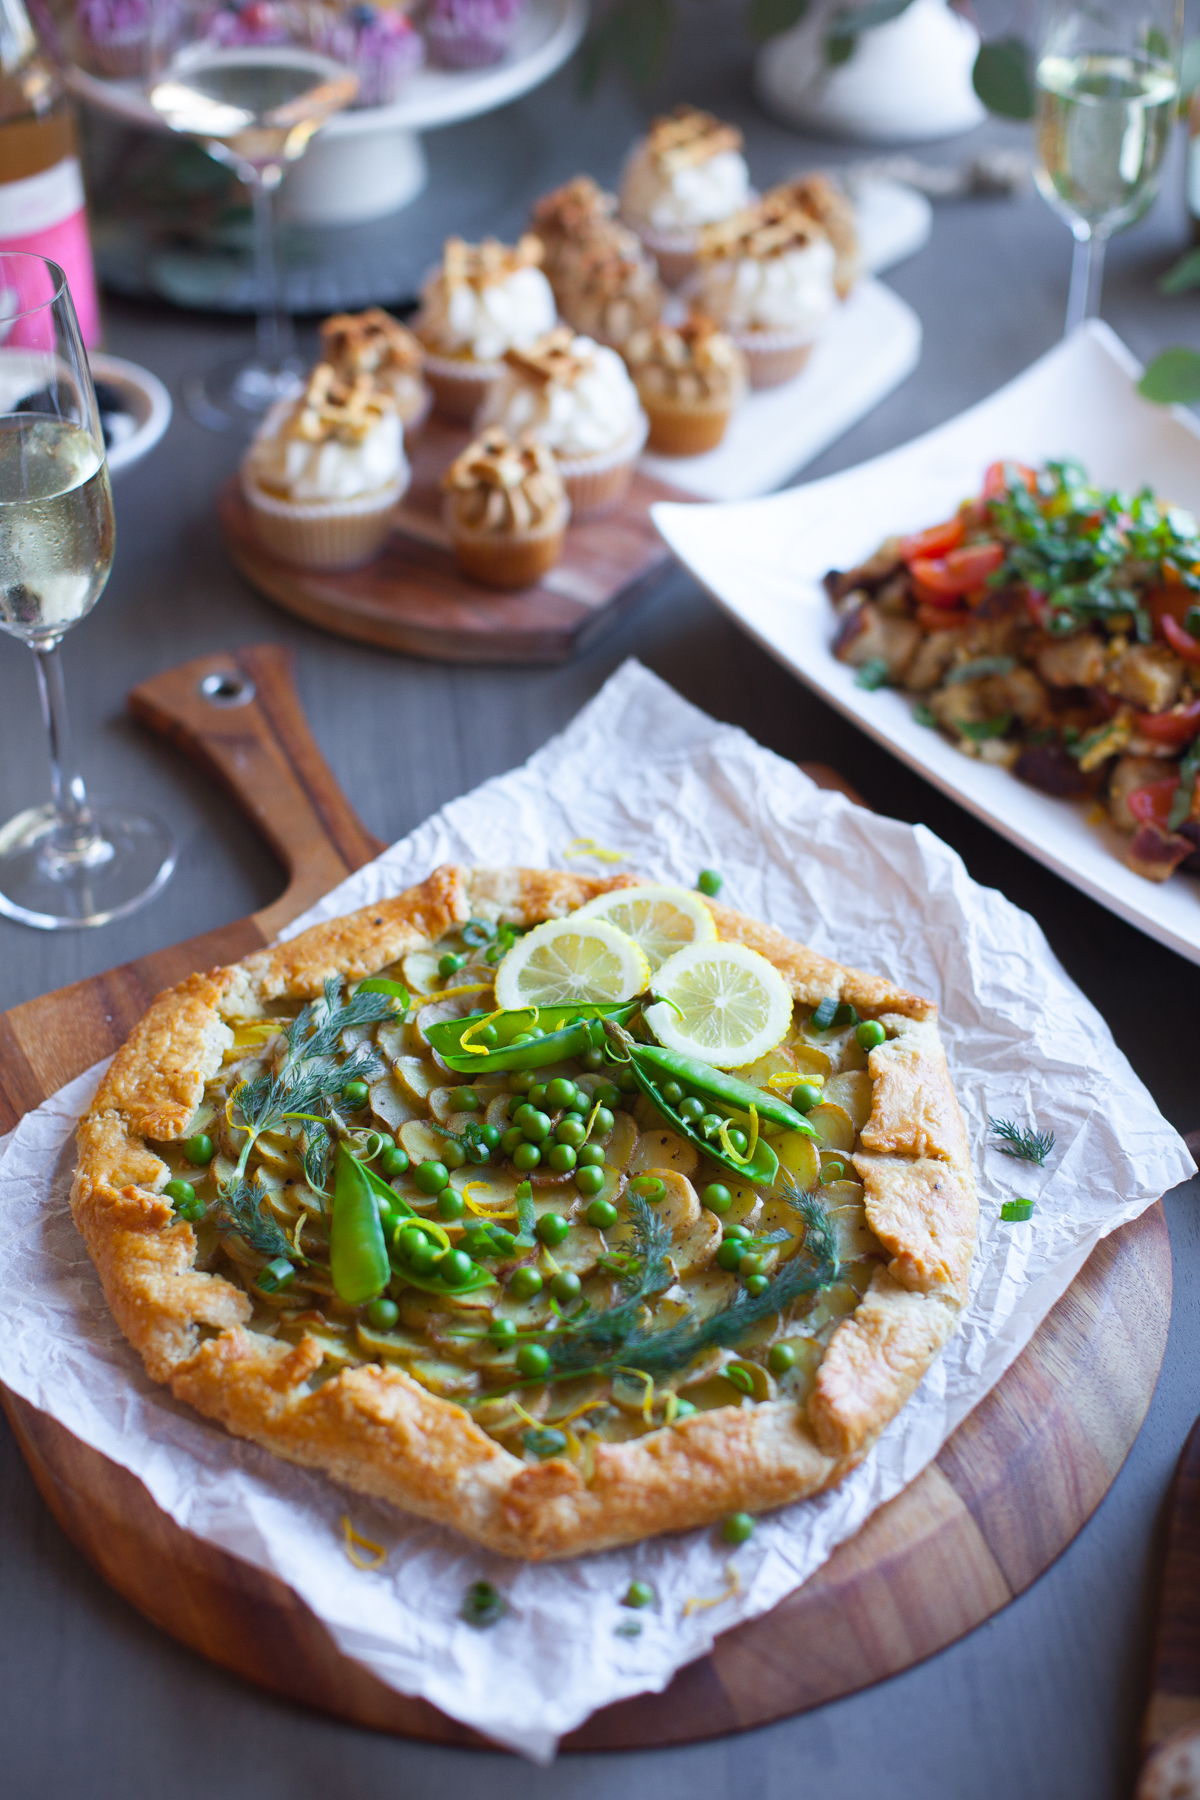 Ricotta, Potato & Spring Pea Galette at the Spring Fling Brunch.